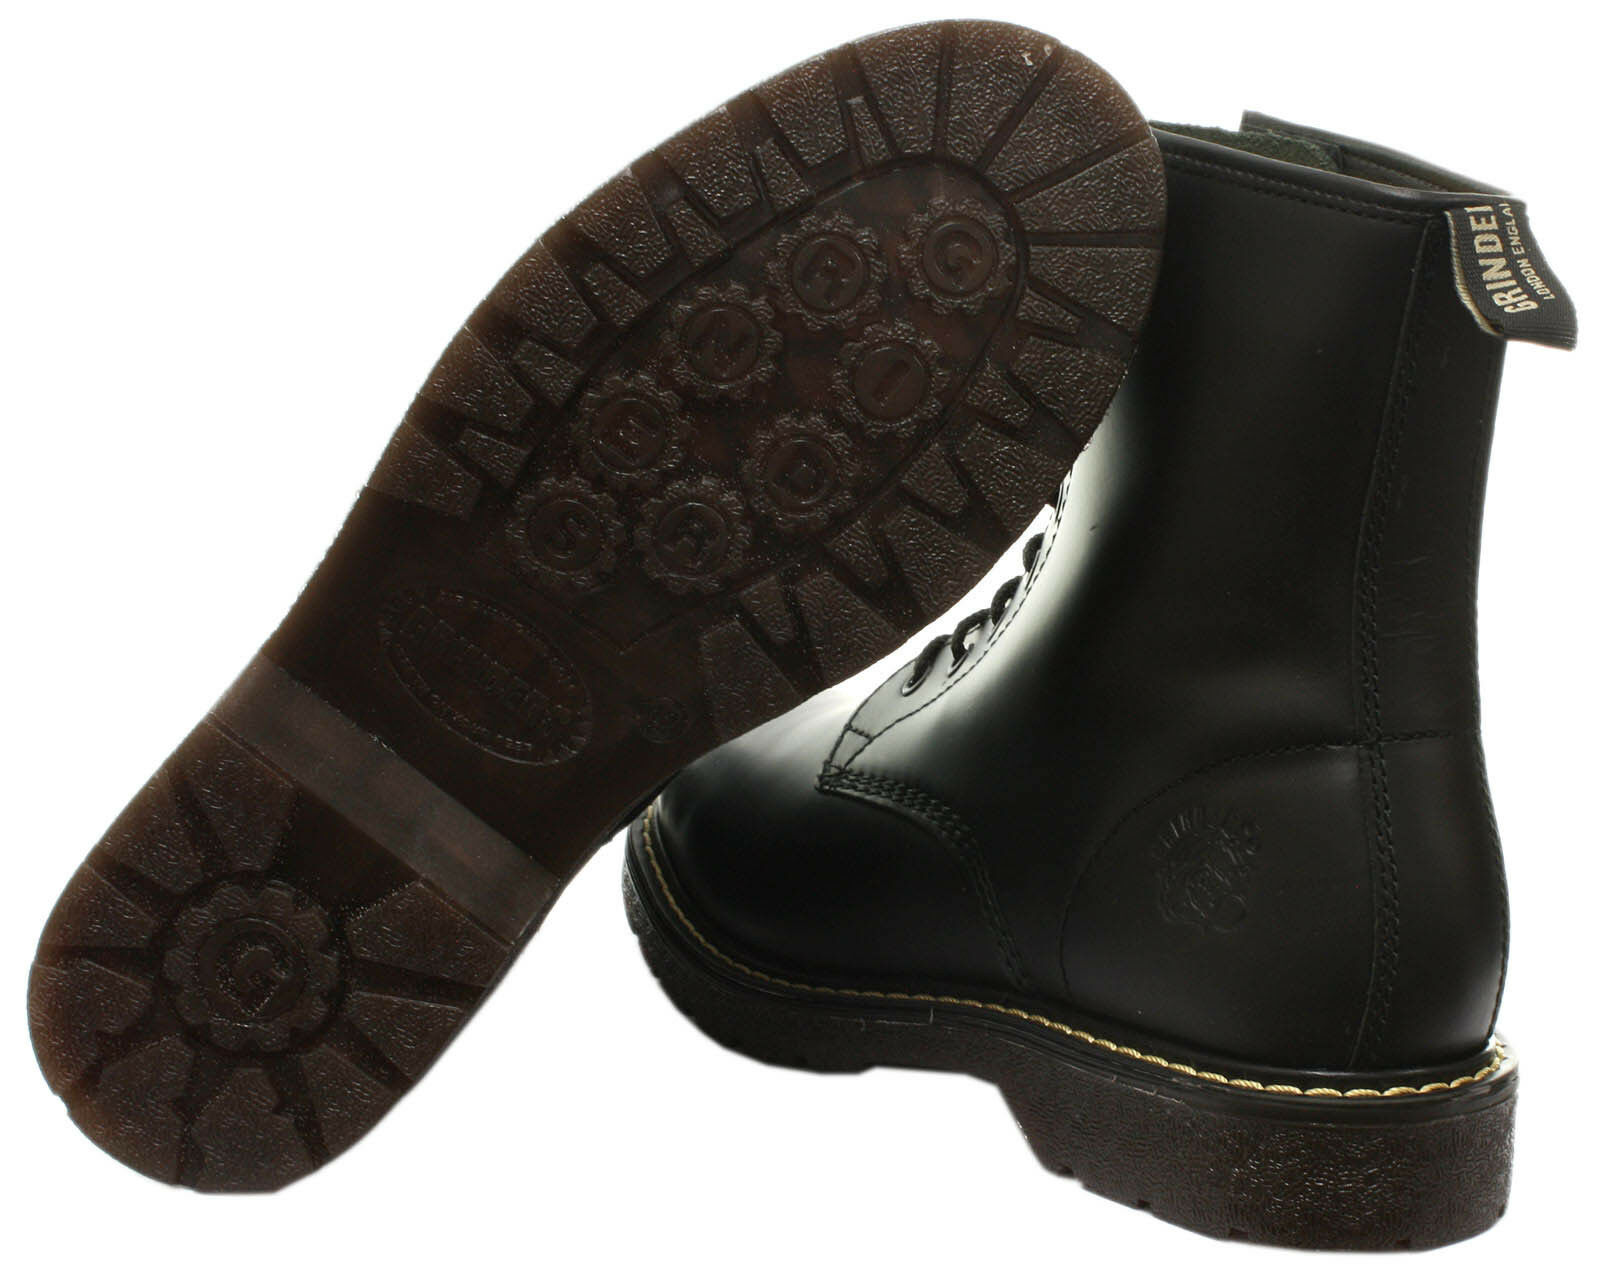 New Grinders Cedric 8 Eyelet Derby Lace Black Mens Ladies Mid Calf Leather Boots